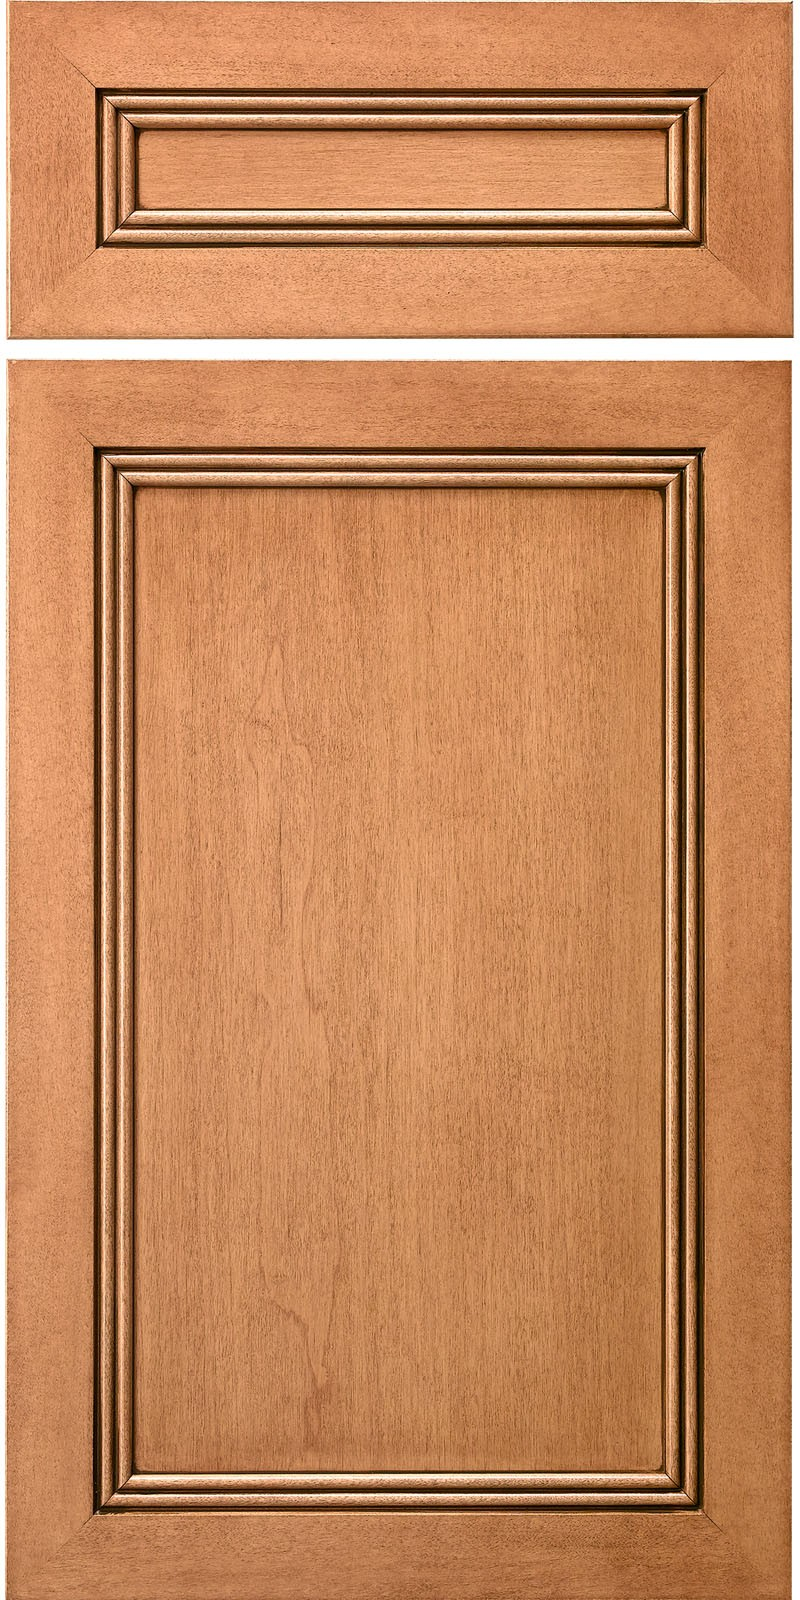 Tw10522 Recessed Panel Construction Cabinet Doors Drawer Fronts Products